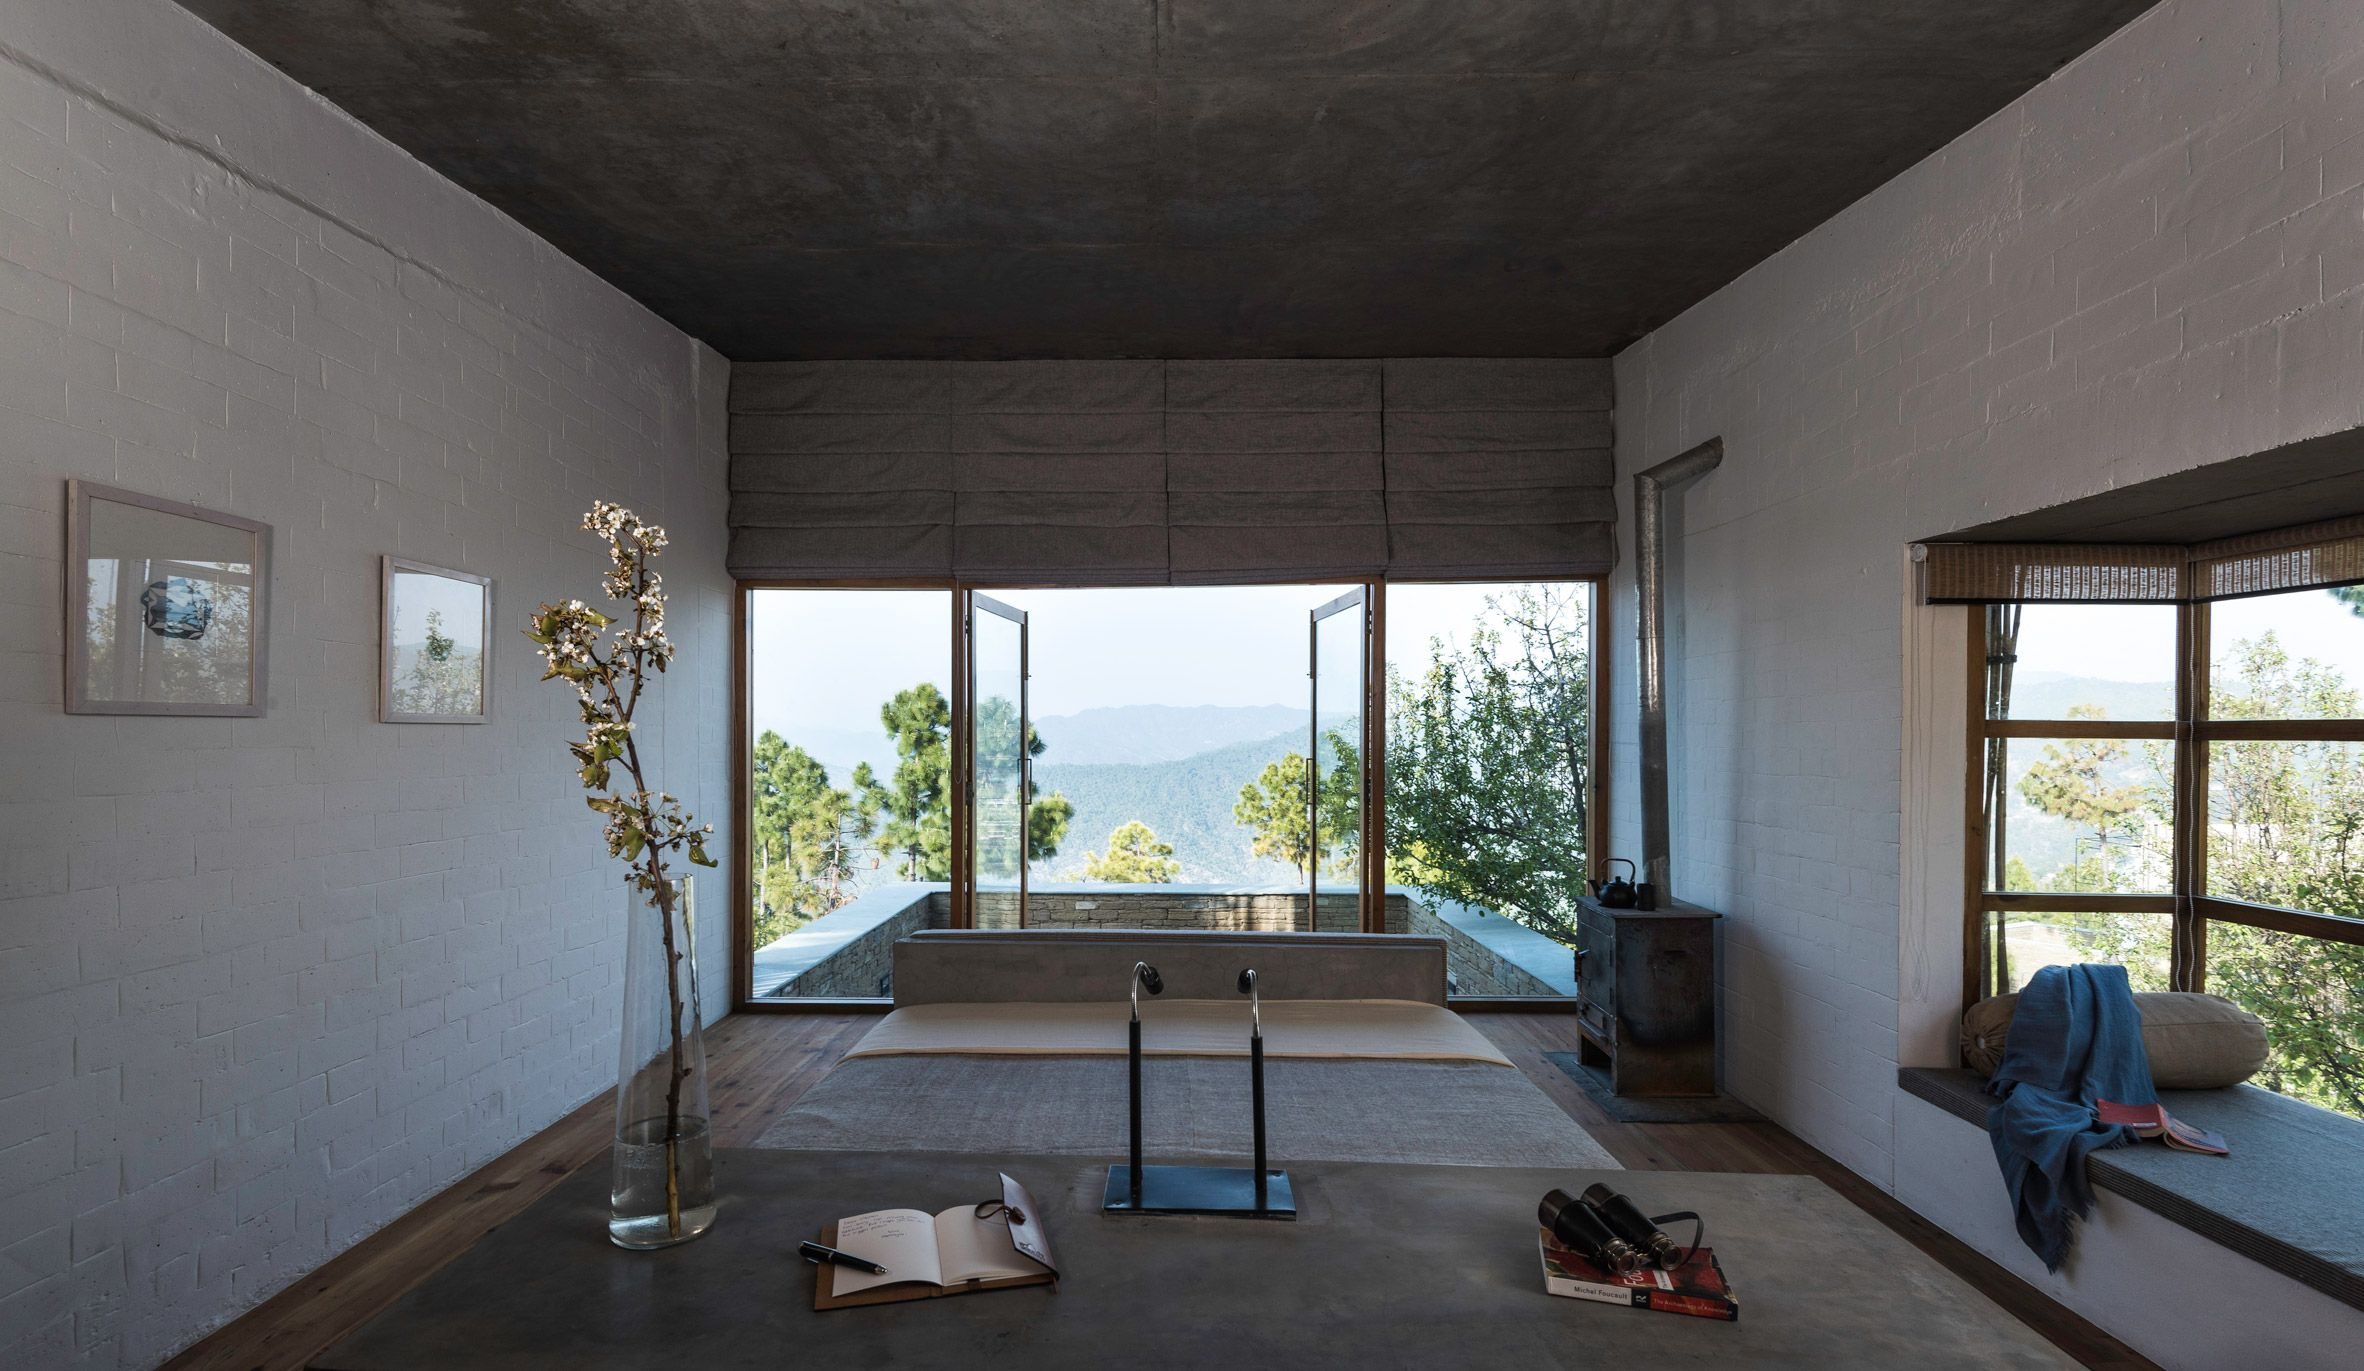 Kumaon Hotel Zowa Architecture Hotels India Mountains Dezeen 2364 Col 7